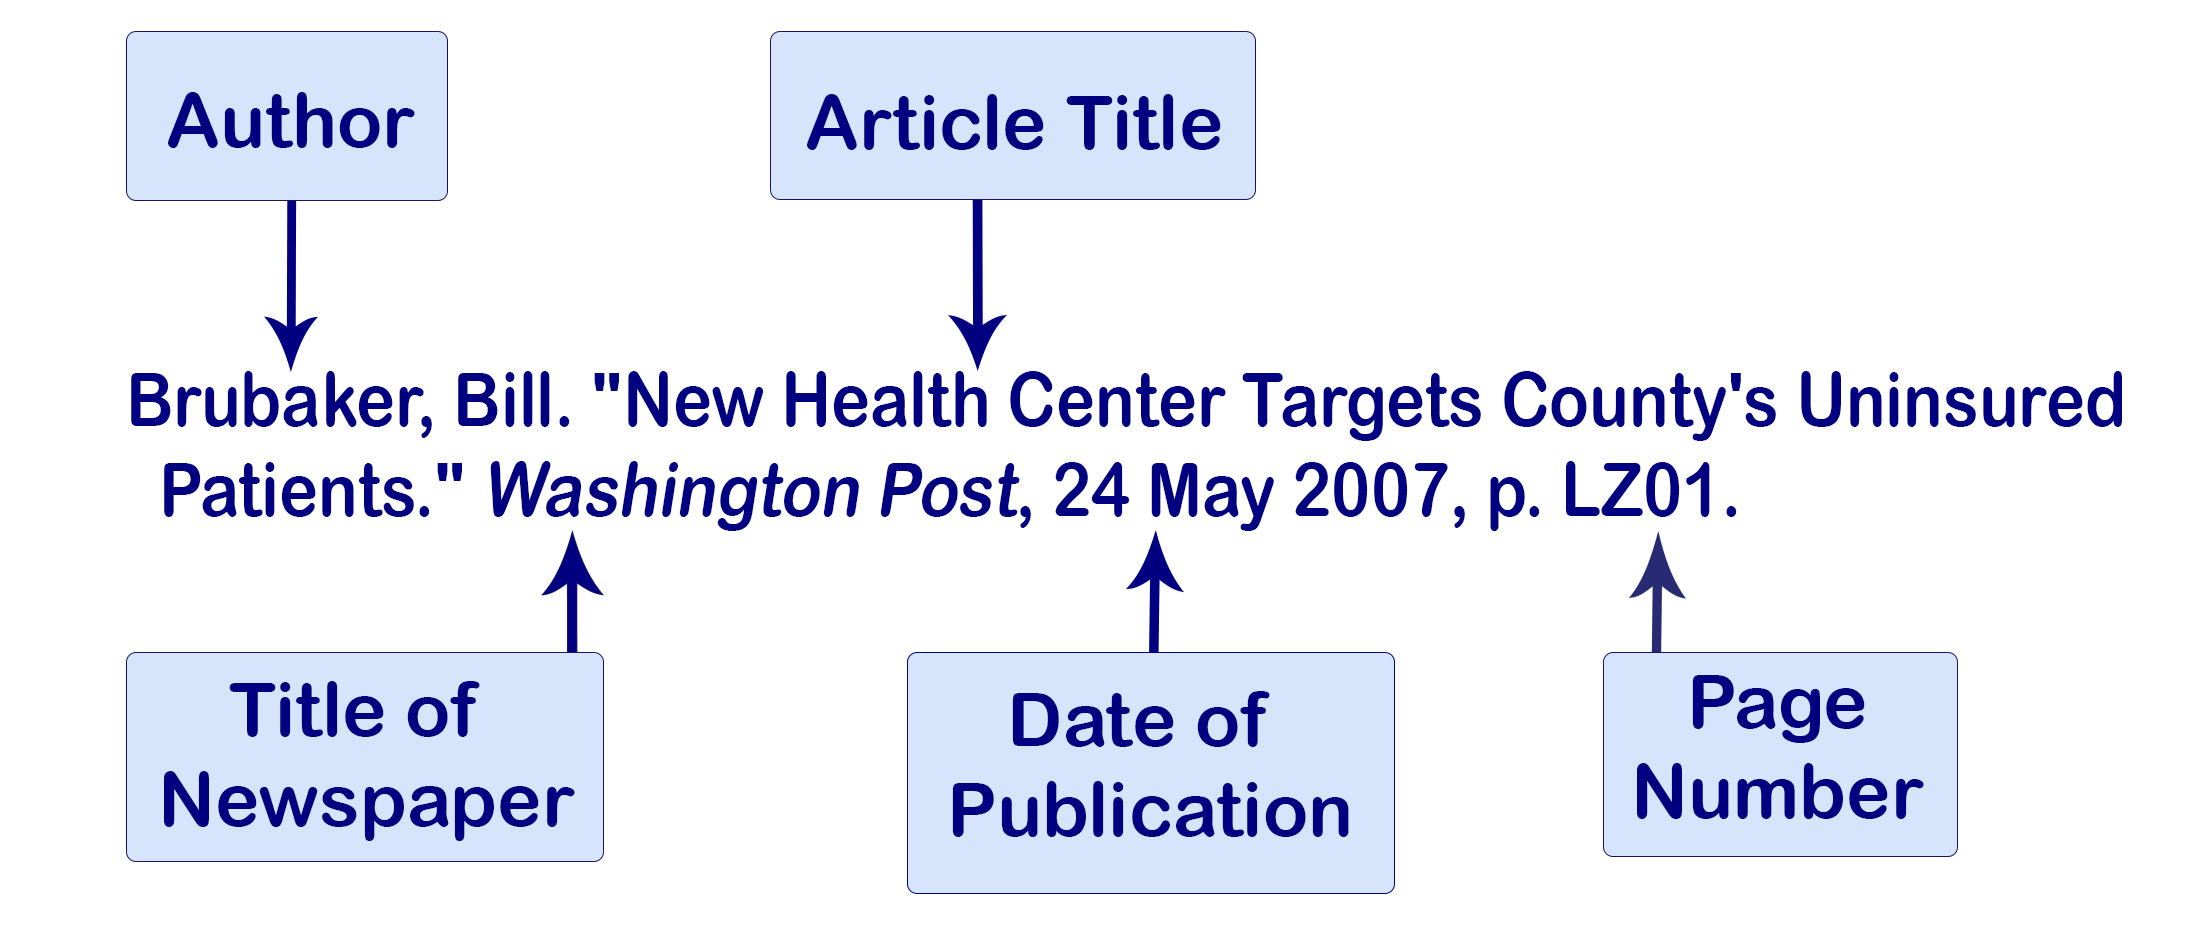 Example of an MLA citation of a newspaper article with one author